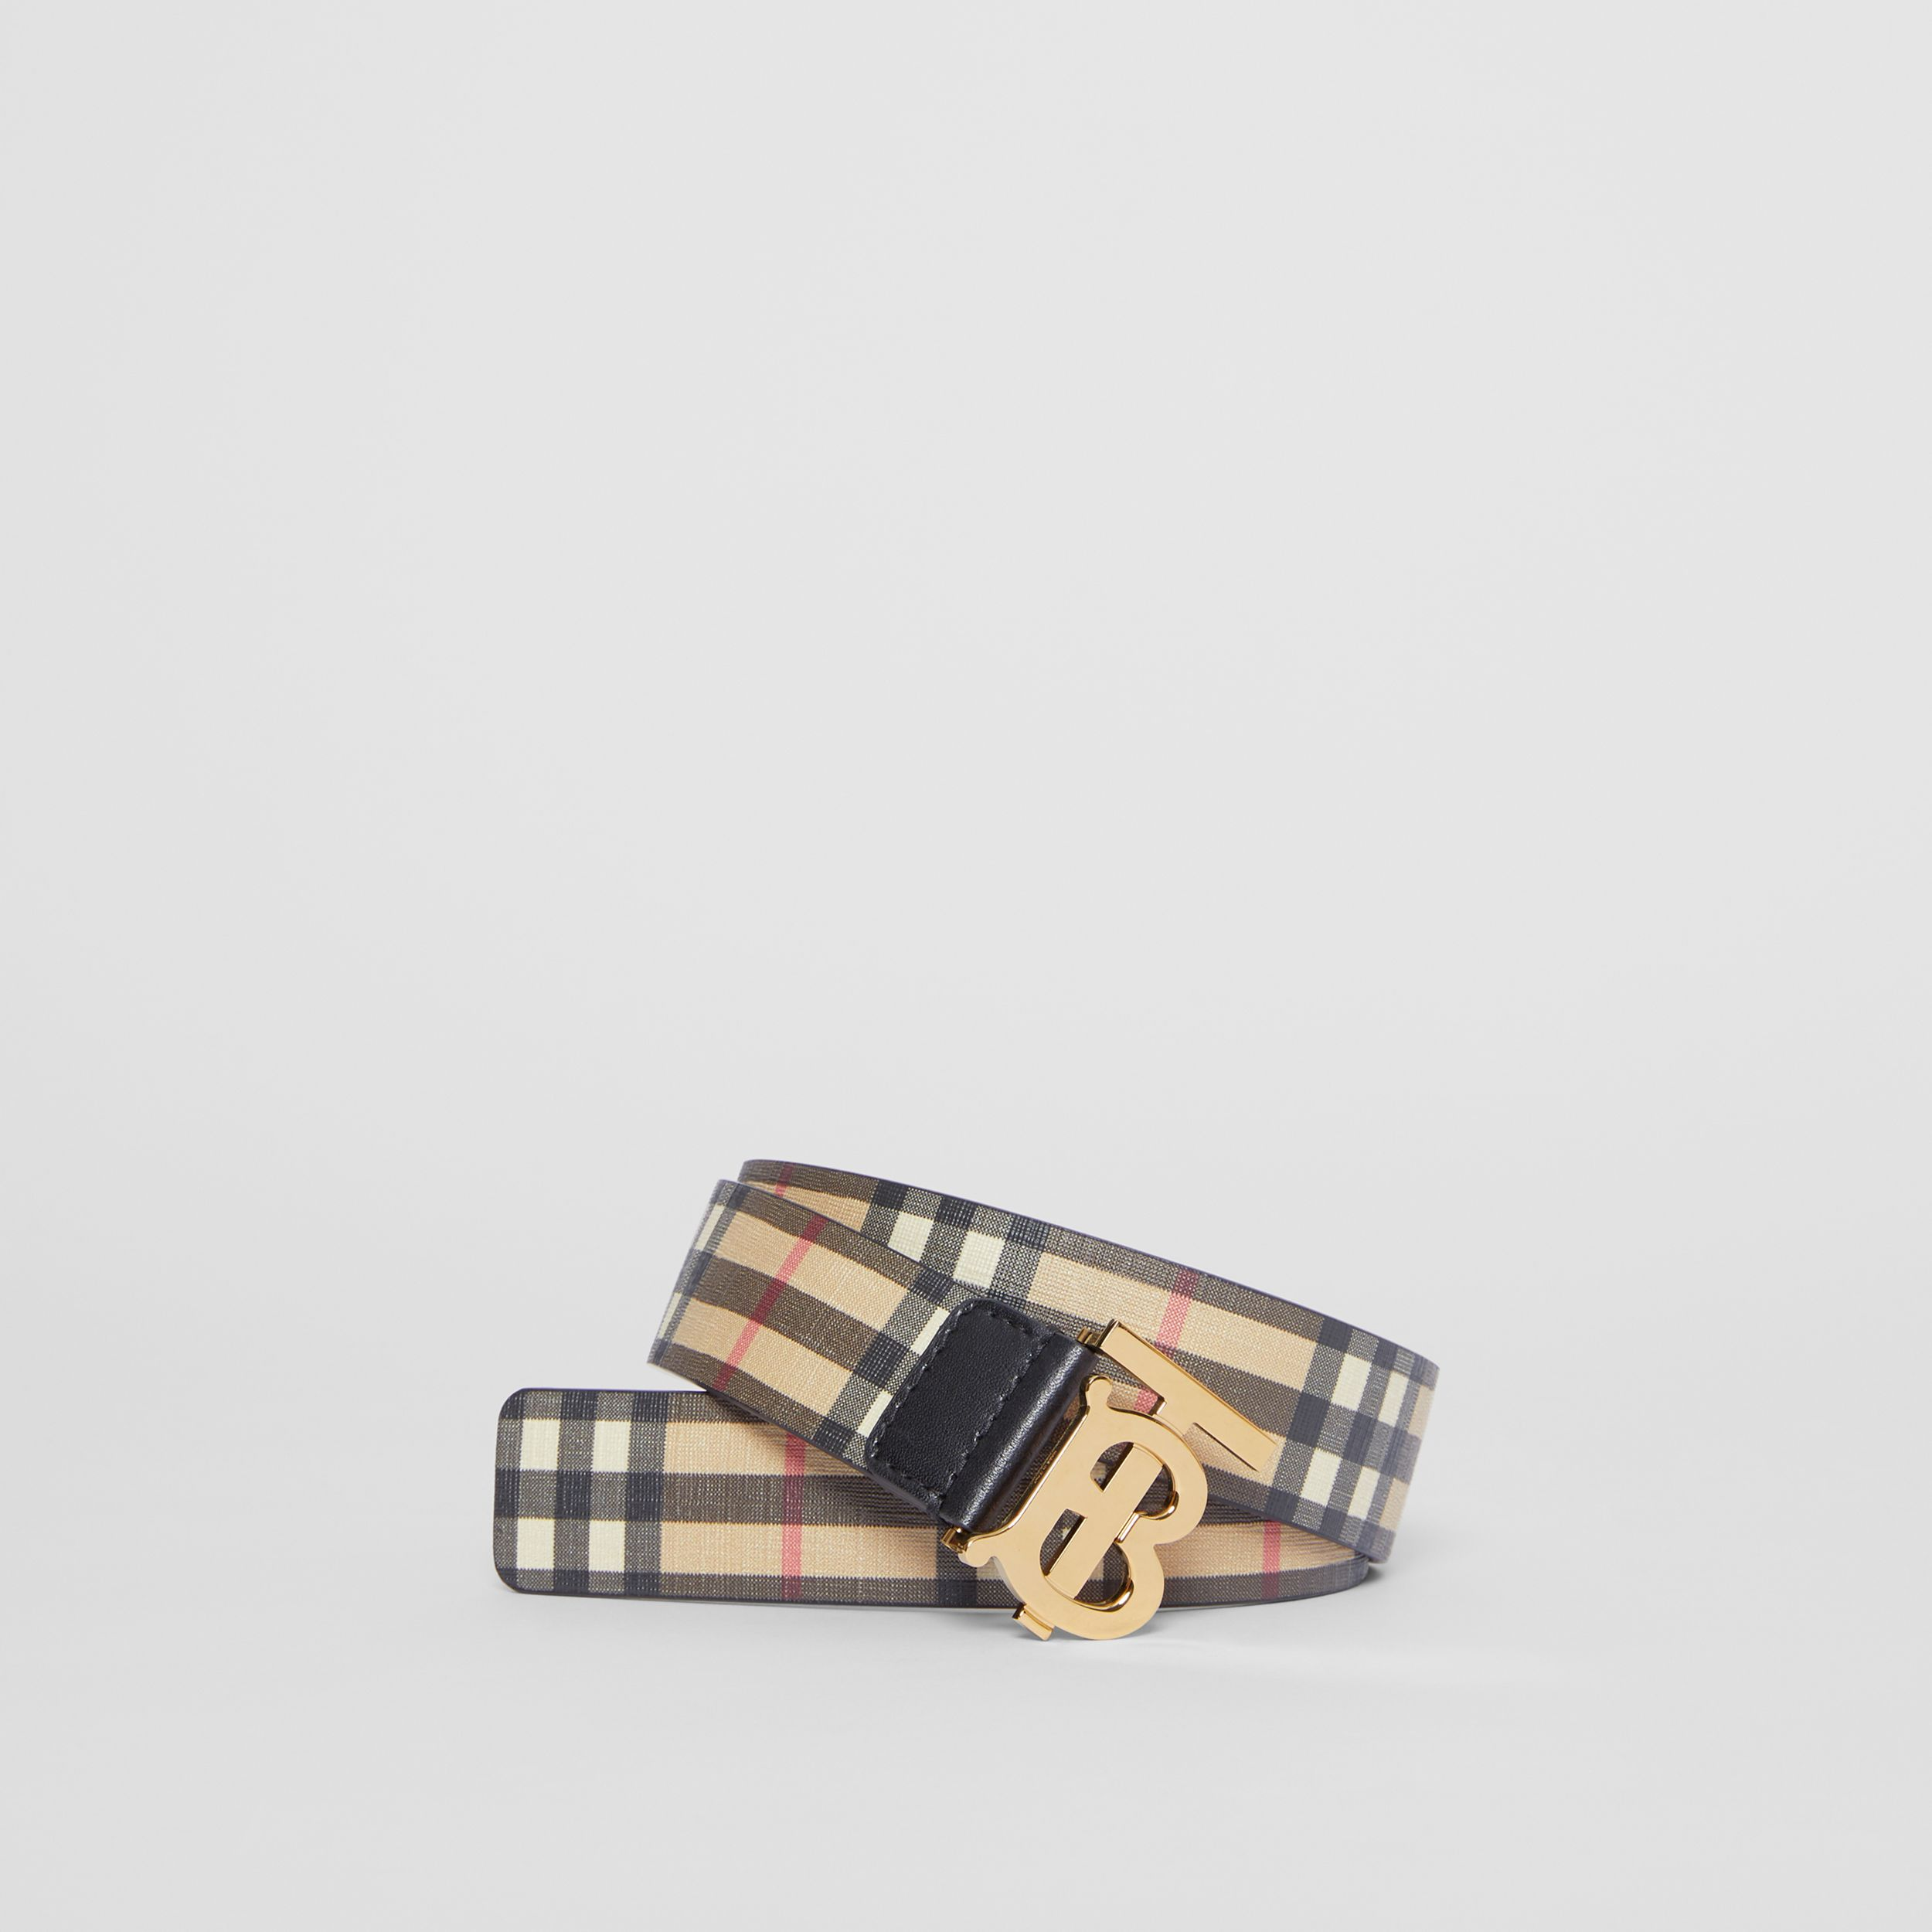 Monogram Motif Vintage Check E-canvas Belt in Archive Beige - Women | Burberry United States - 1